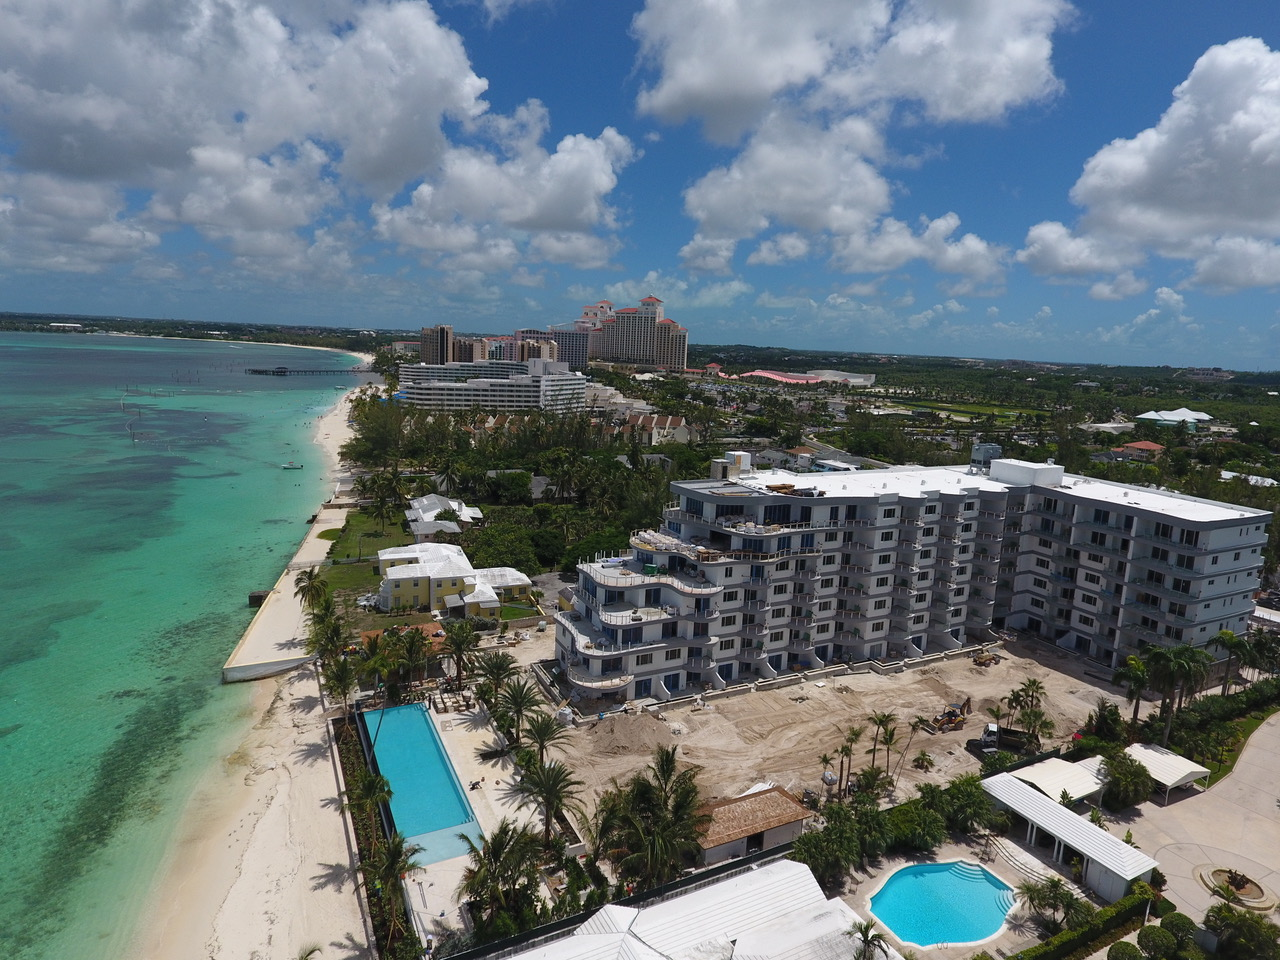 Co-op / Condo for Sale at Beachfront Condo Development One Cable Beach, Cable Beach, Nassau And Paradise Island Bahamas